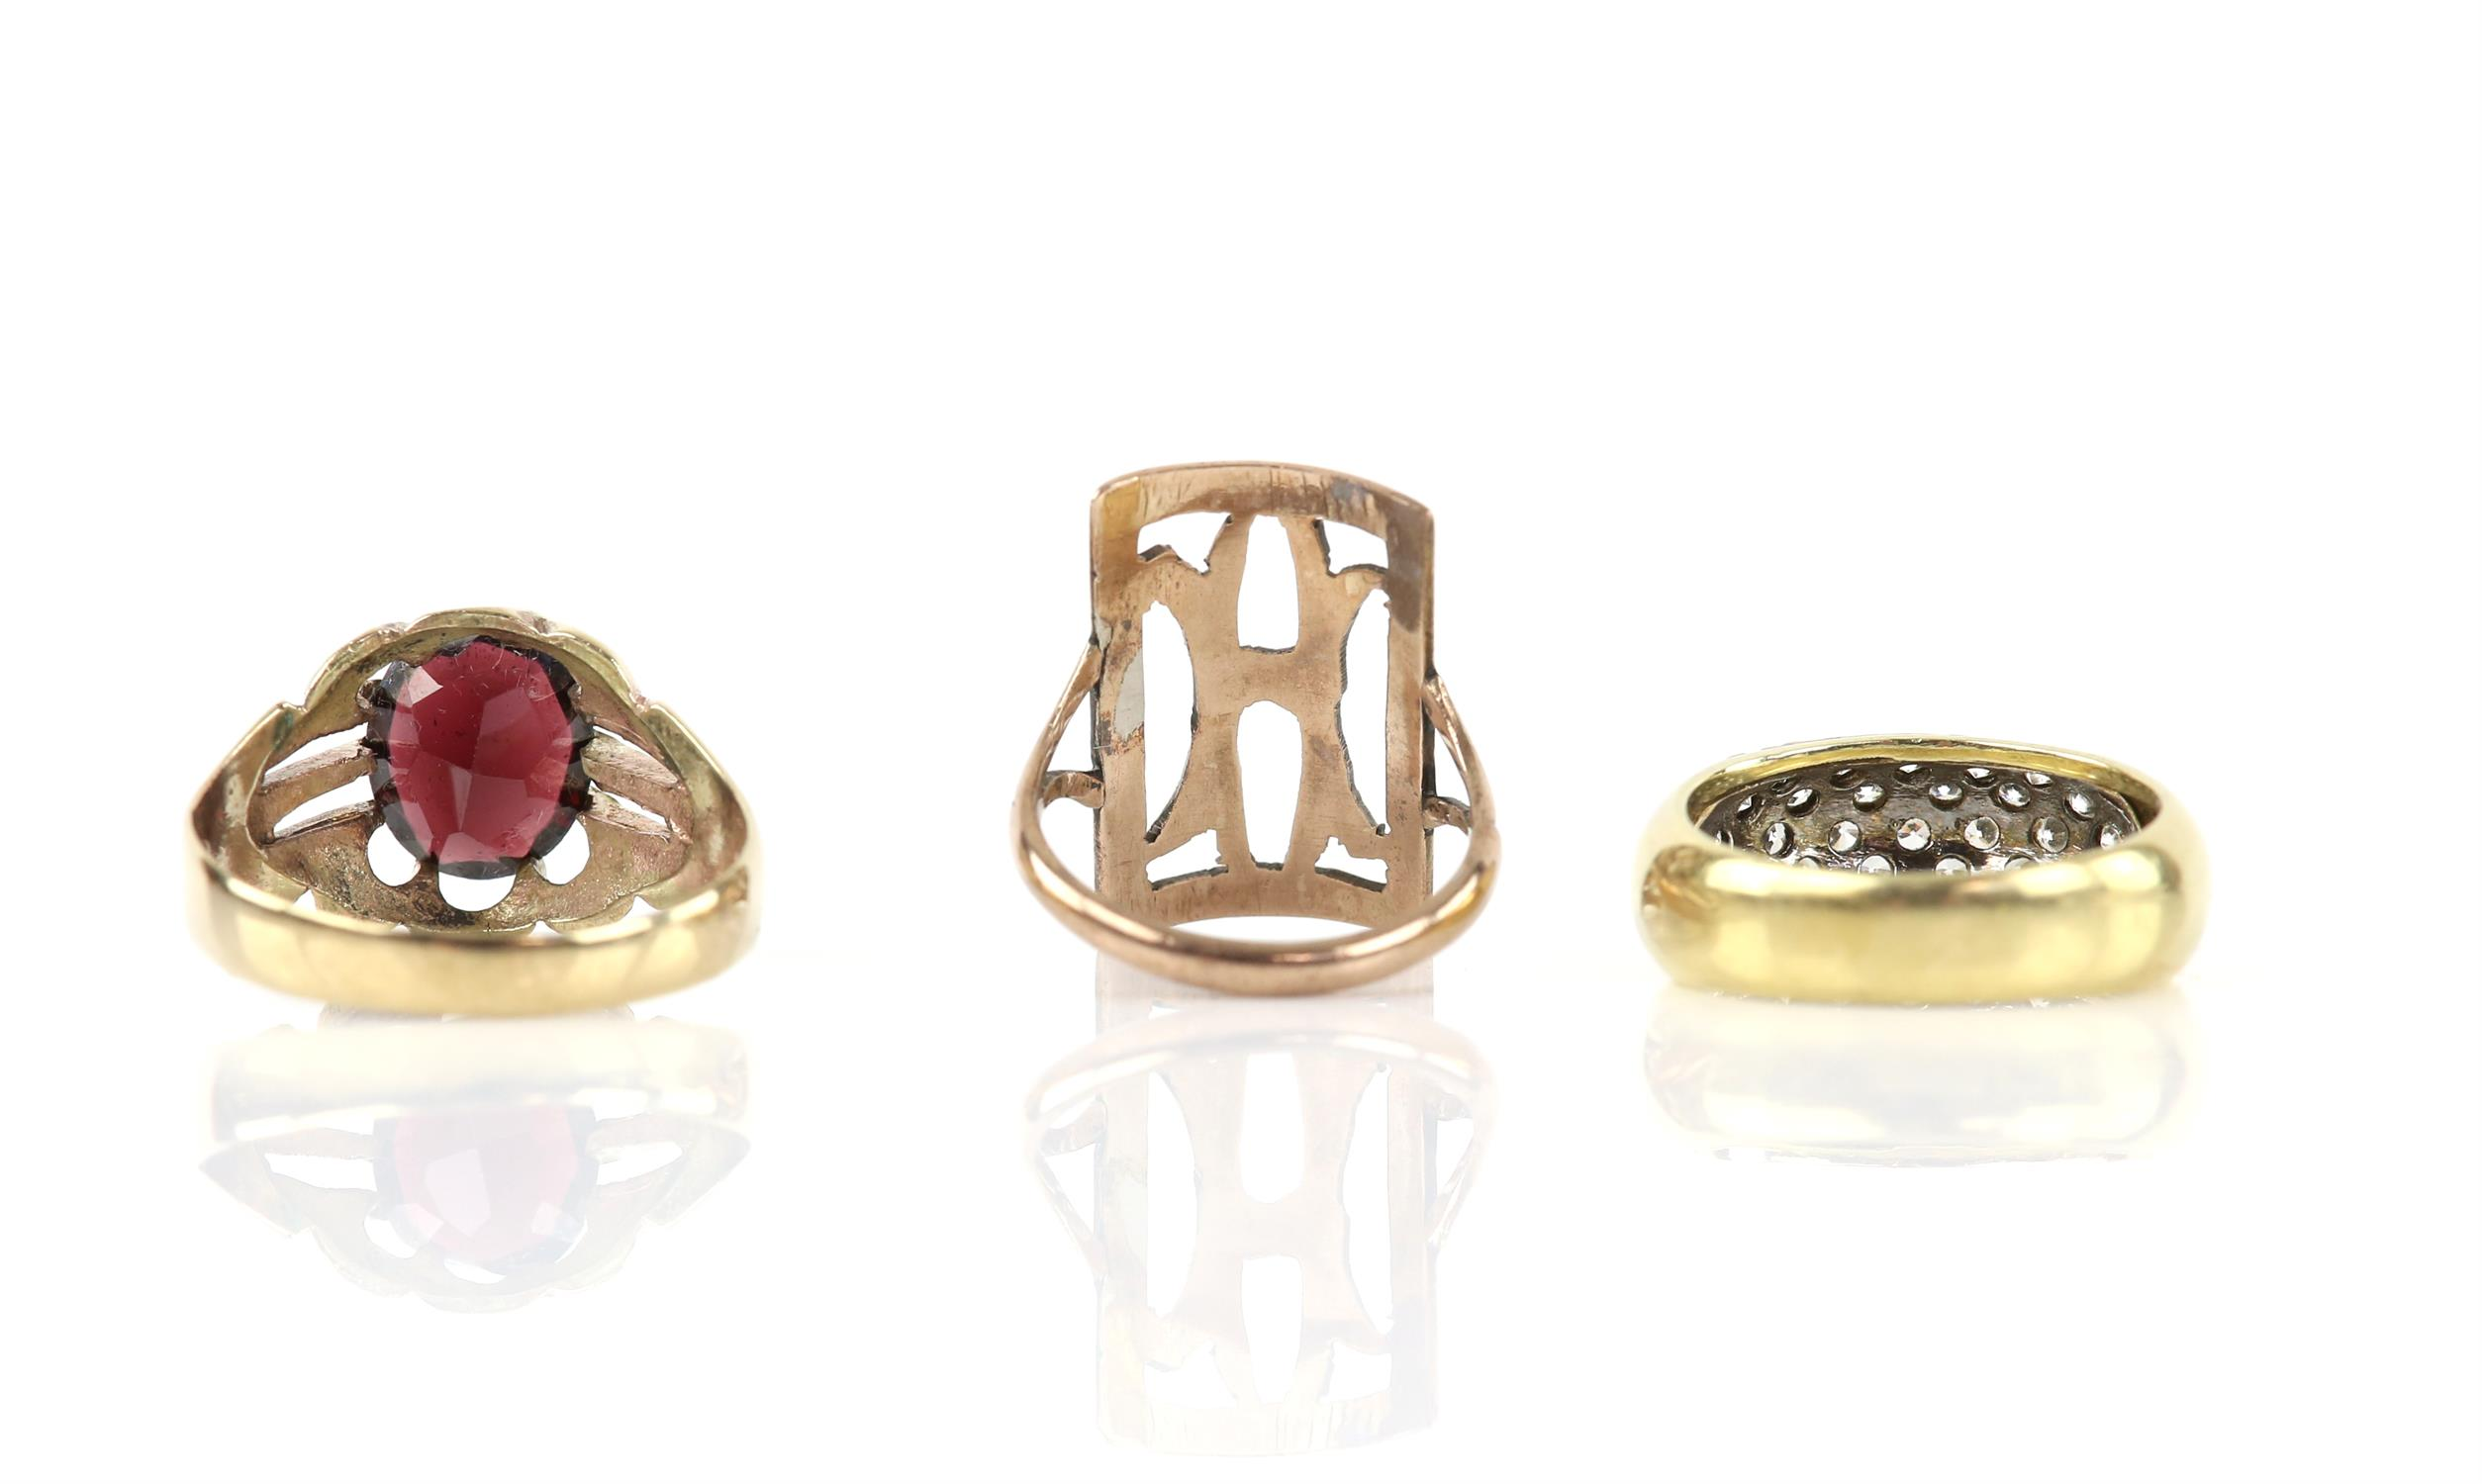 Three rings, including a single stone garnet ring, in 9 ct, ring size W, a multi stone cubic - Image 2 of 2